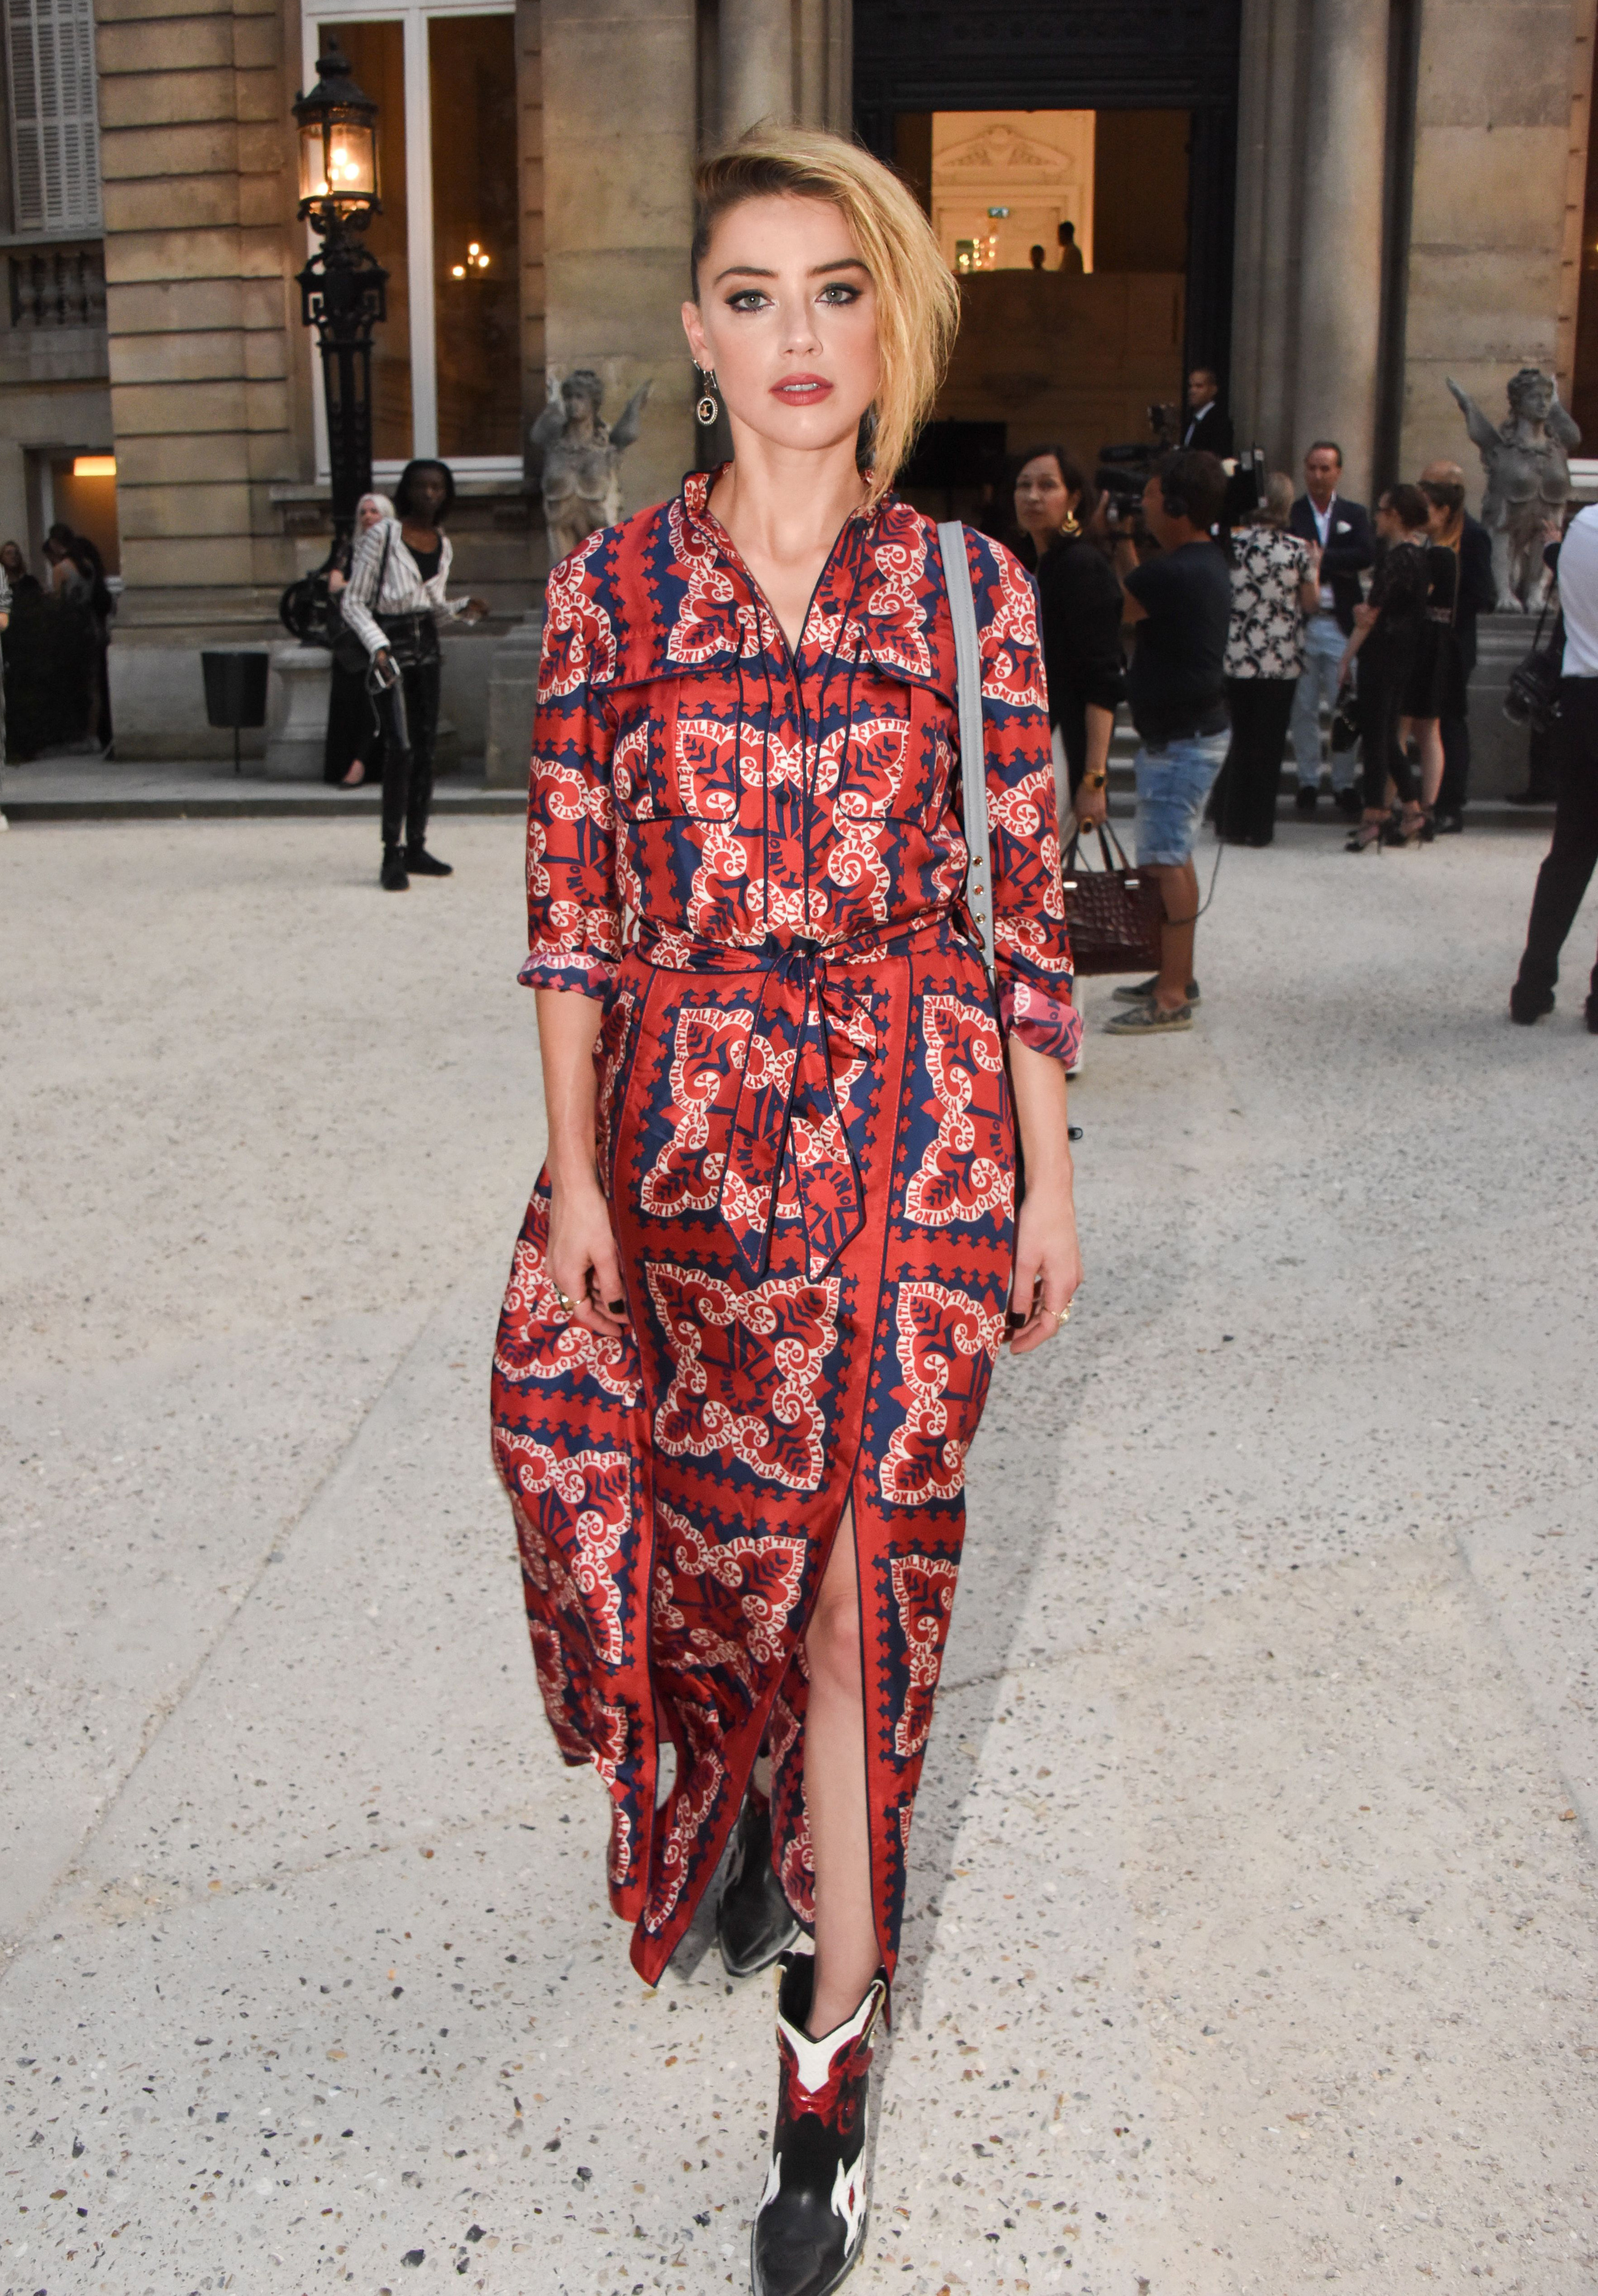 Amber Heard attends the Valentino show for Haute Couture Fashion Week in Paris on July 4, 2018.